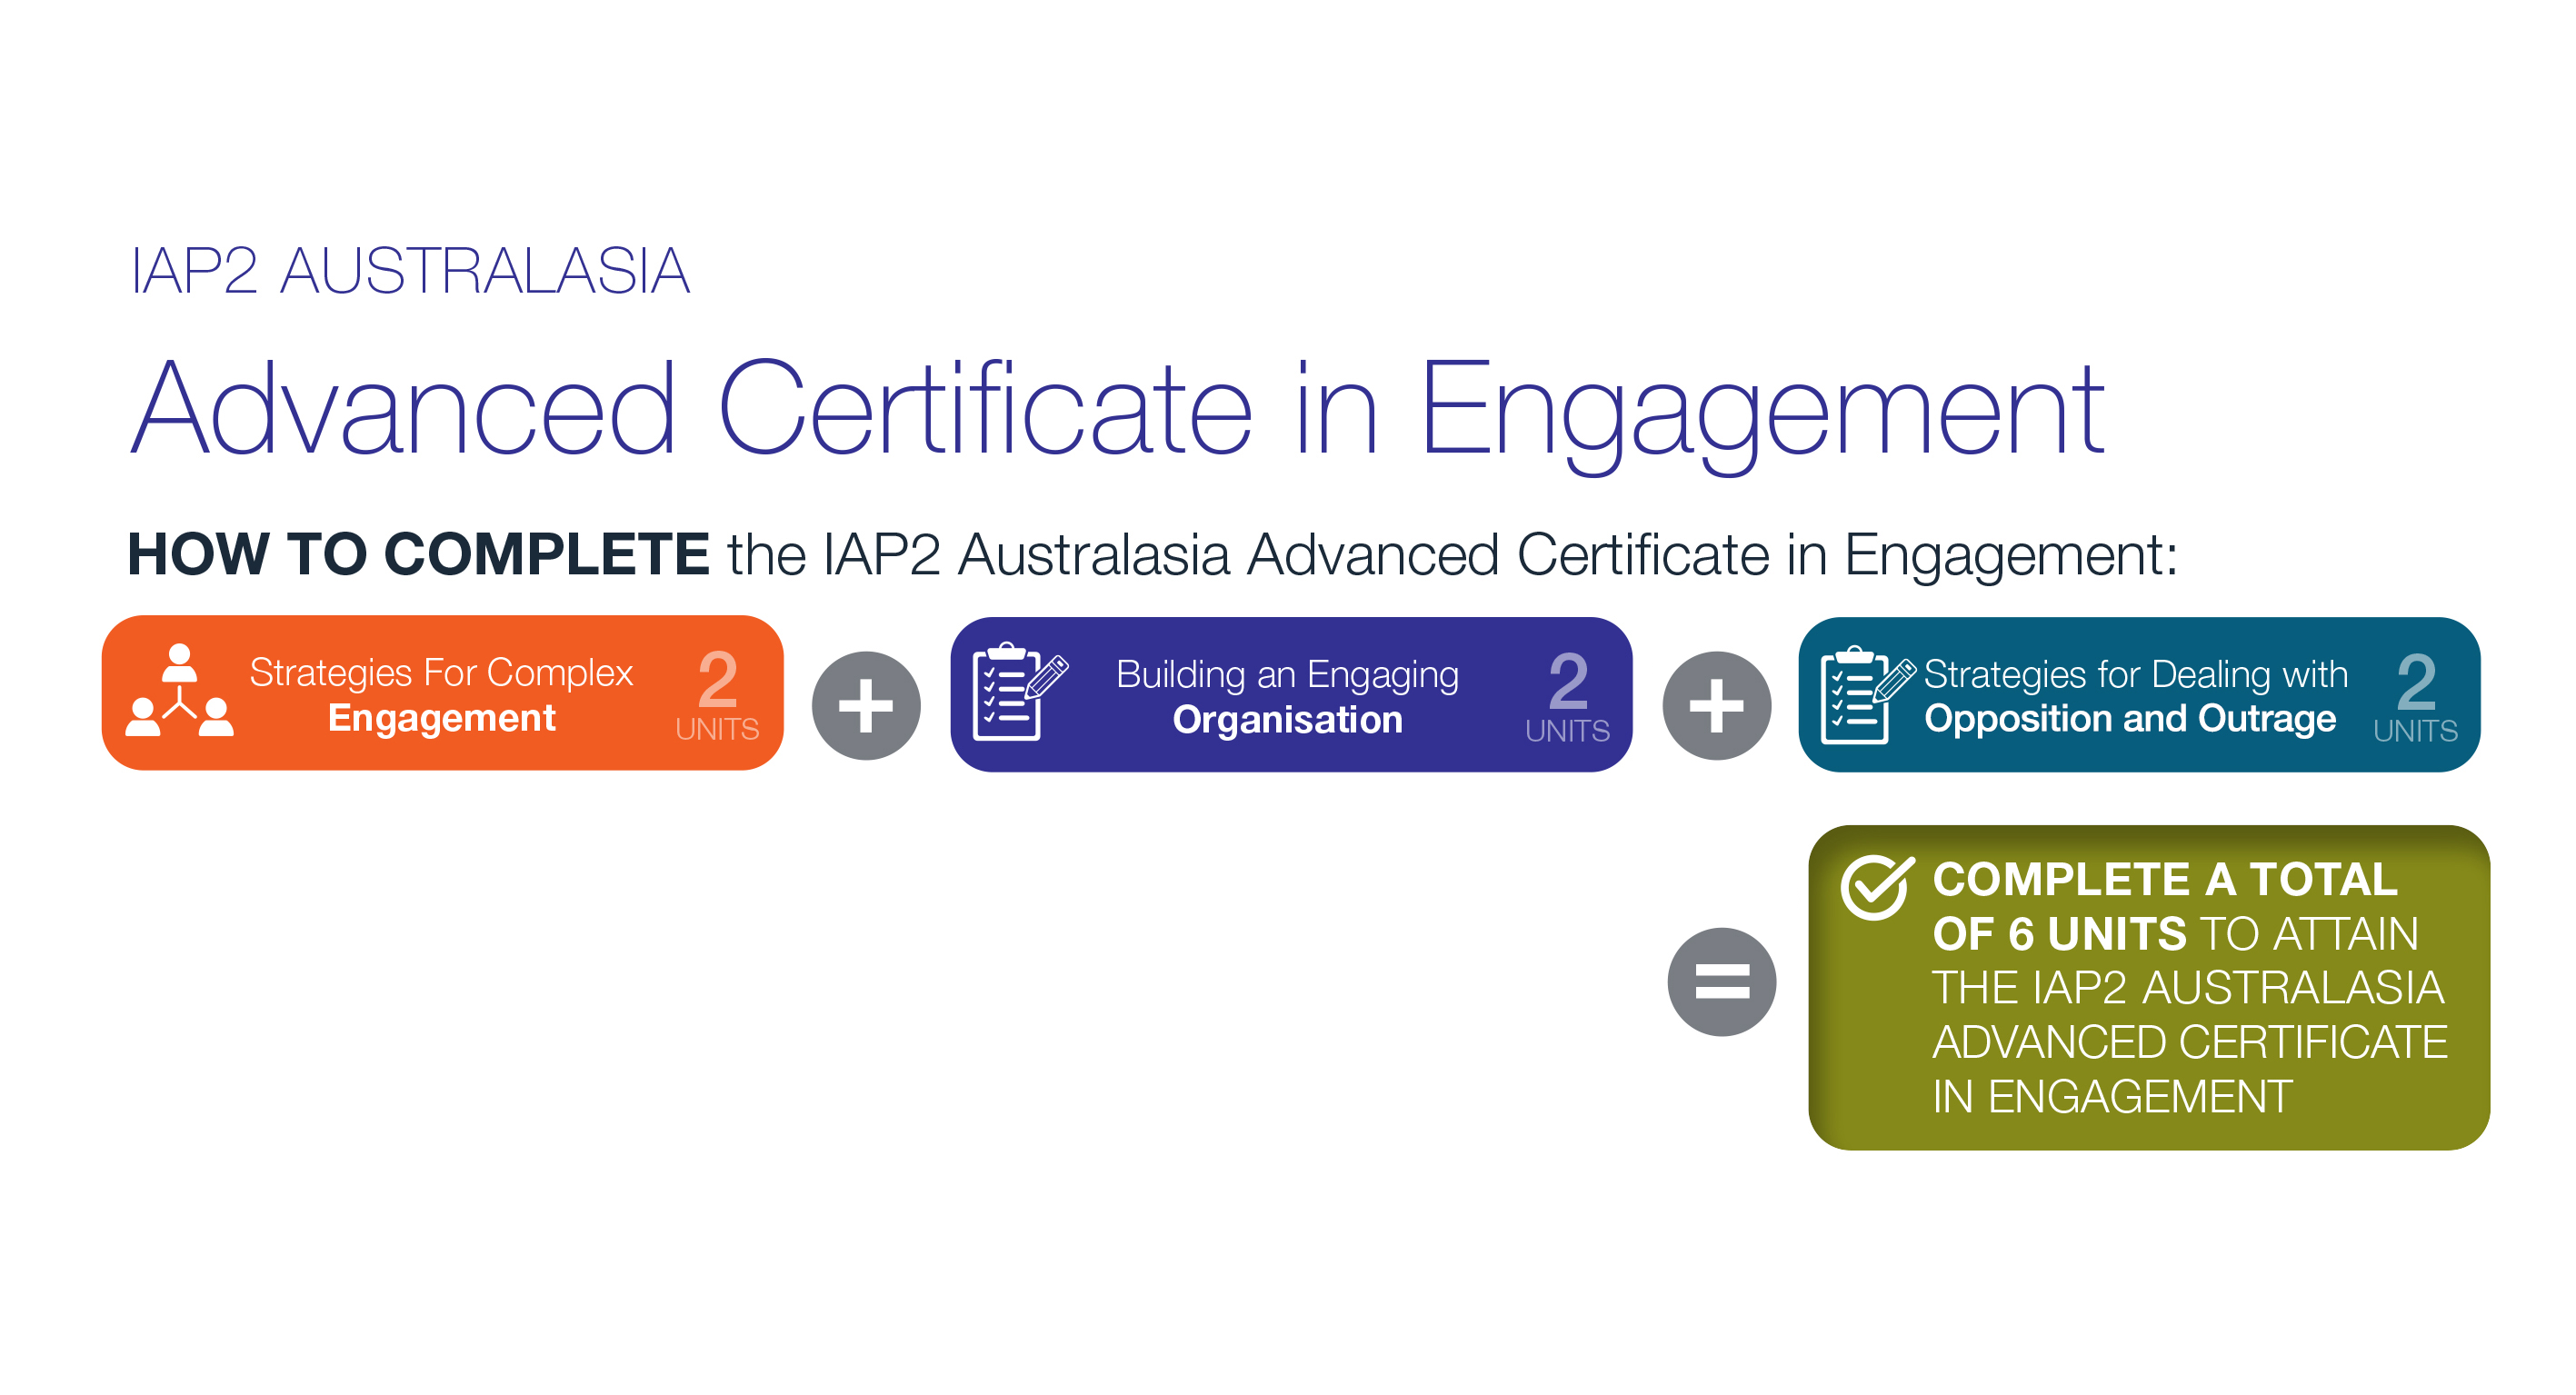 How to complete the Advanced Certificate in Engagement diagram